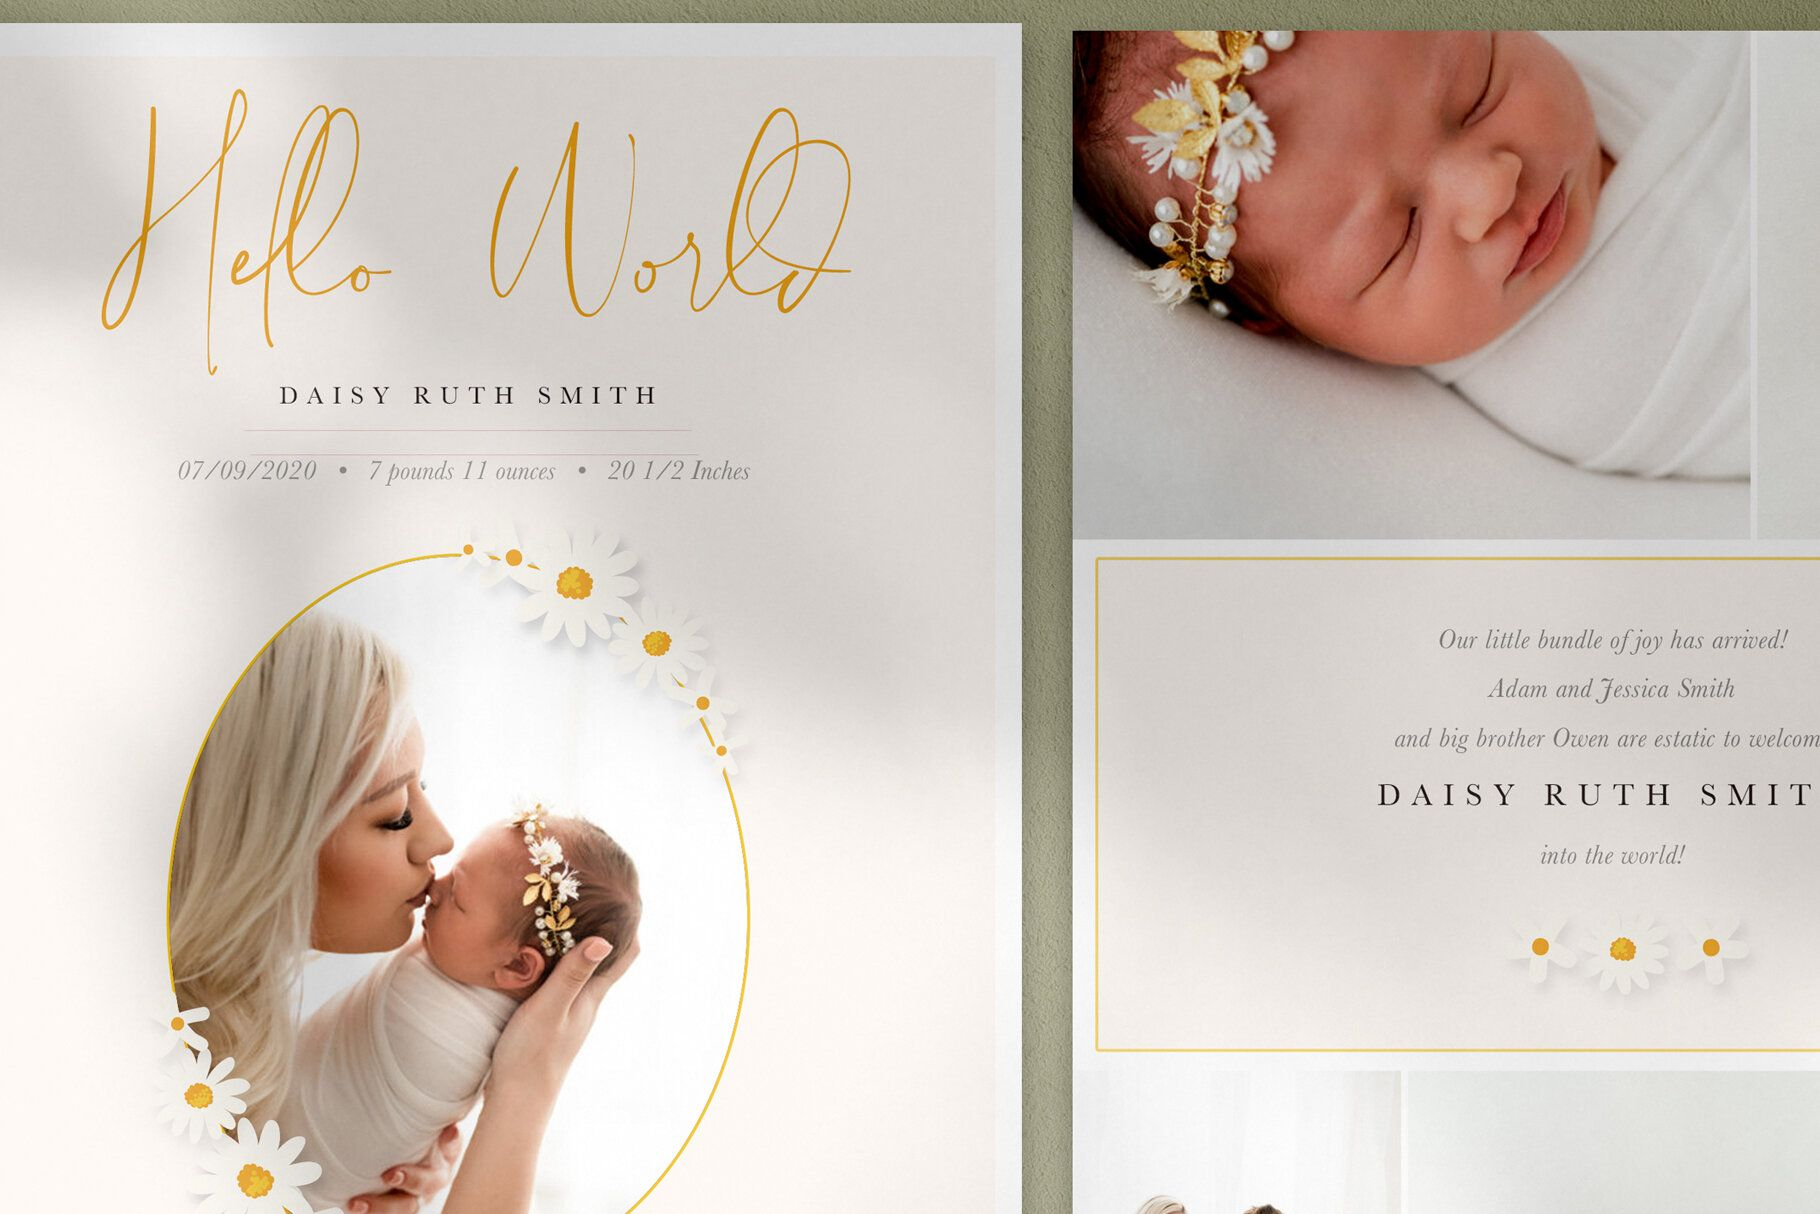 Daisies Girl Baby Announcement Free Matching 3x3 Ornate Card By Stephanie Design Birth Announcement Template Photo Card Template Photoshop Template Design